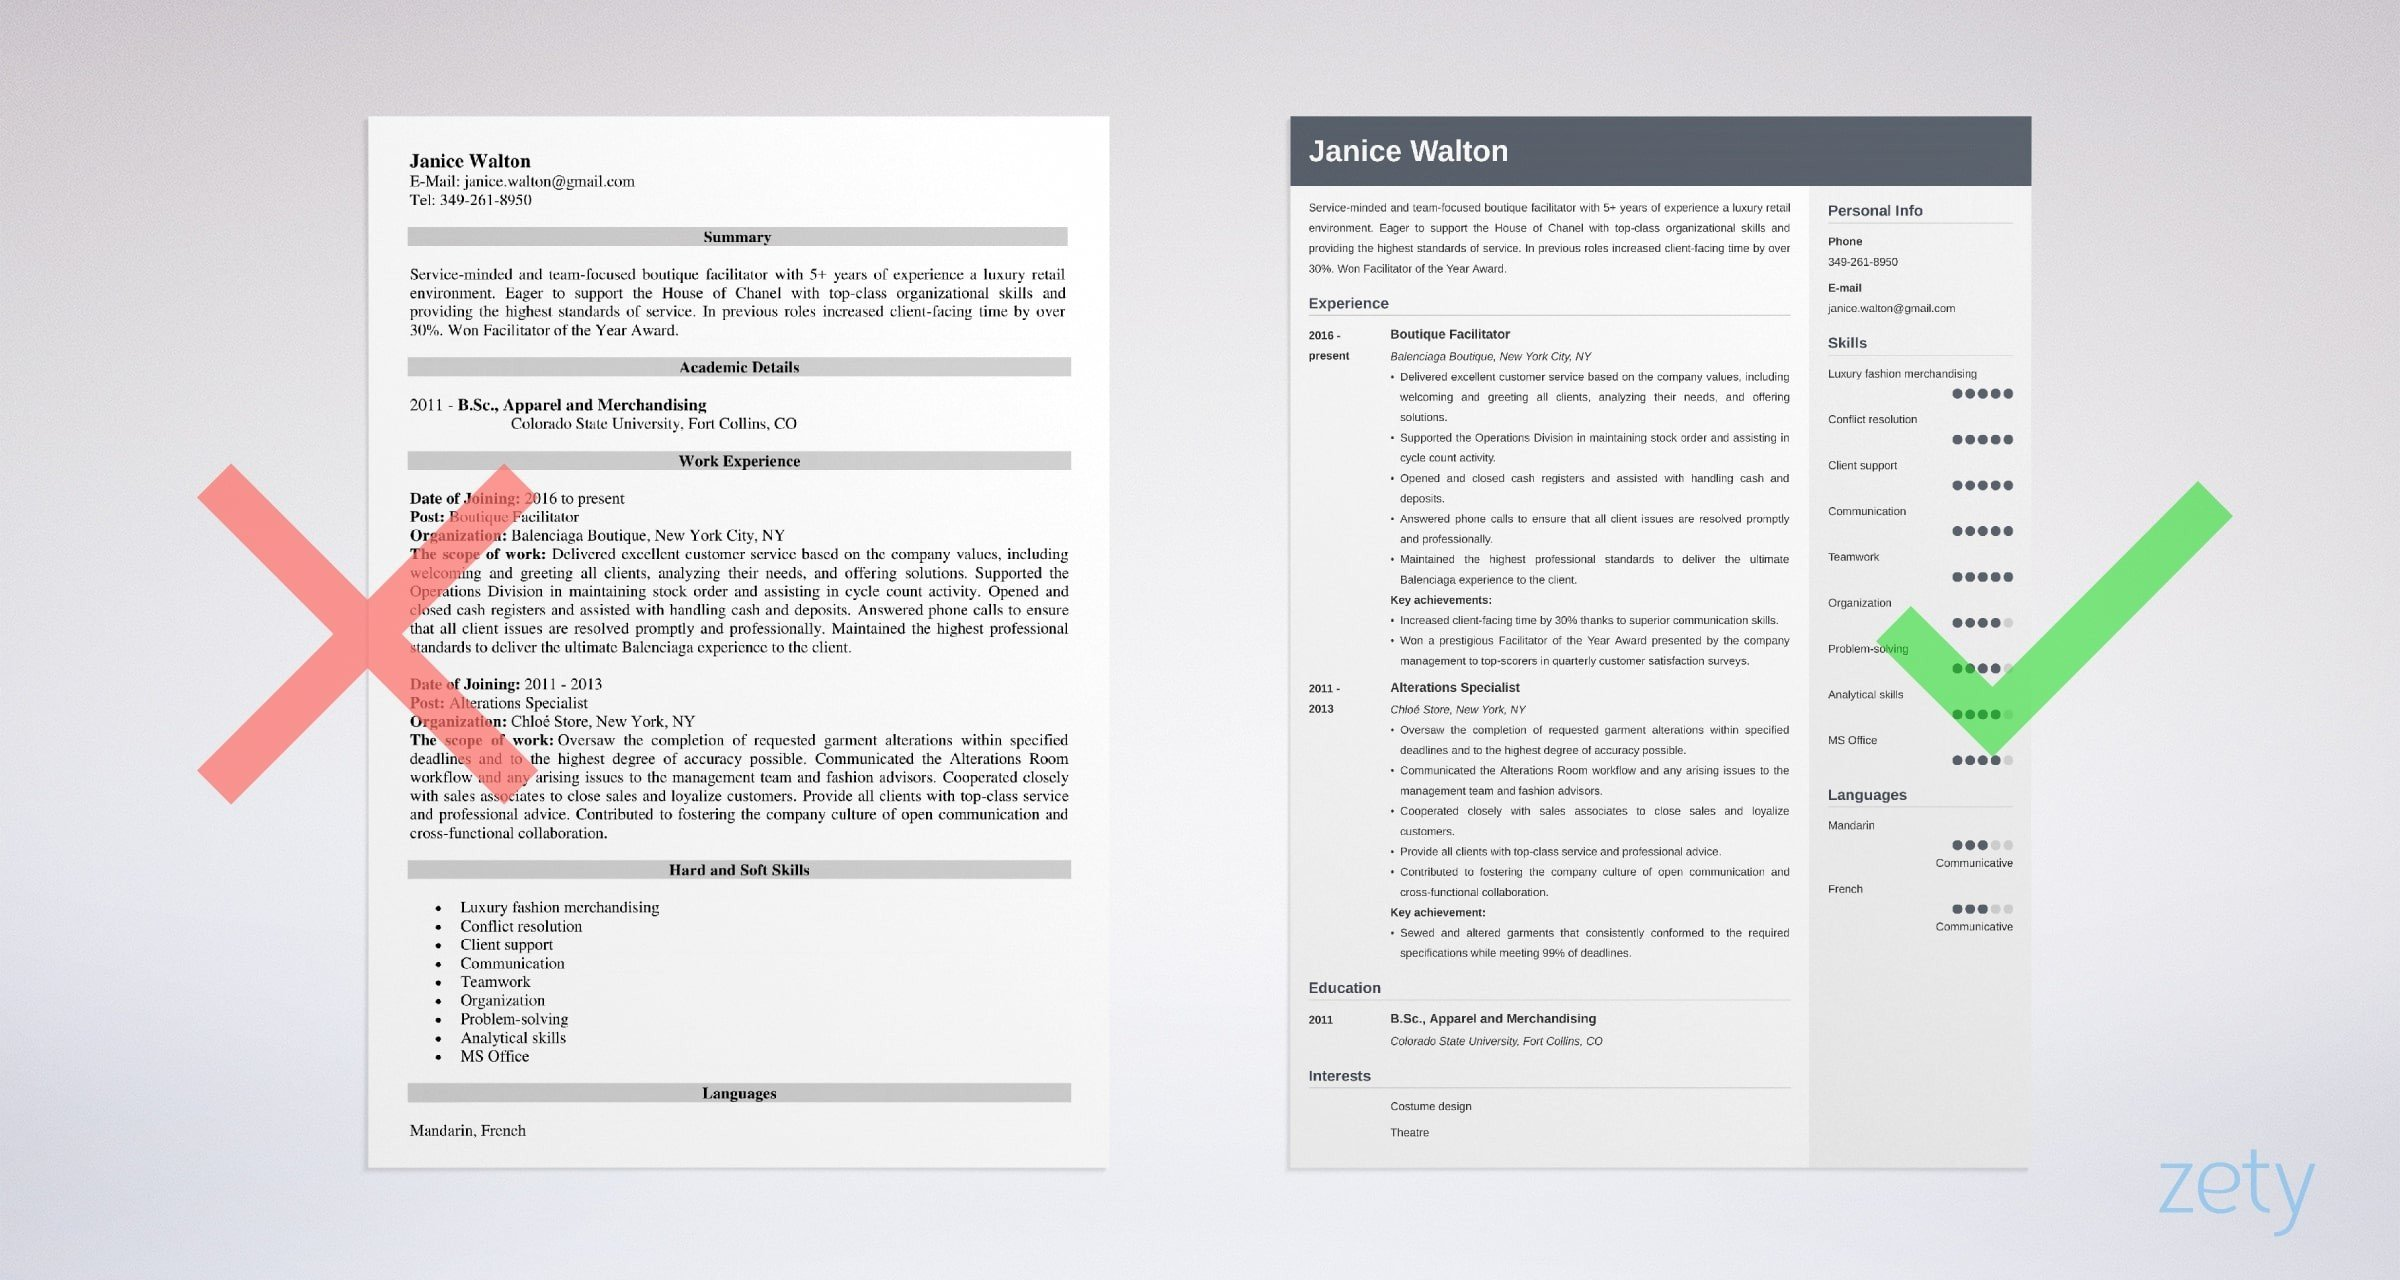 Fashion Resume Examples Templates Guide With 20 Tips